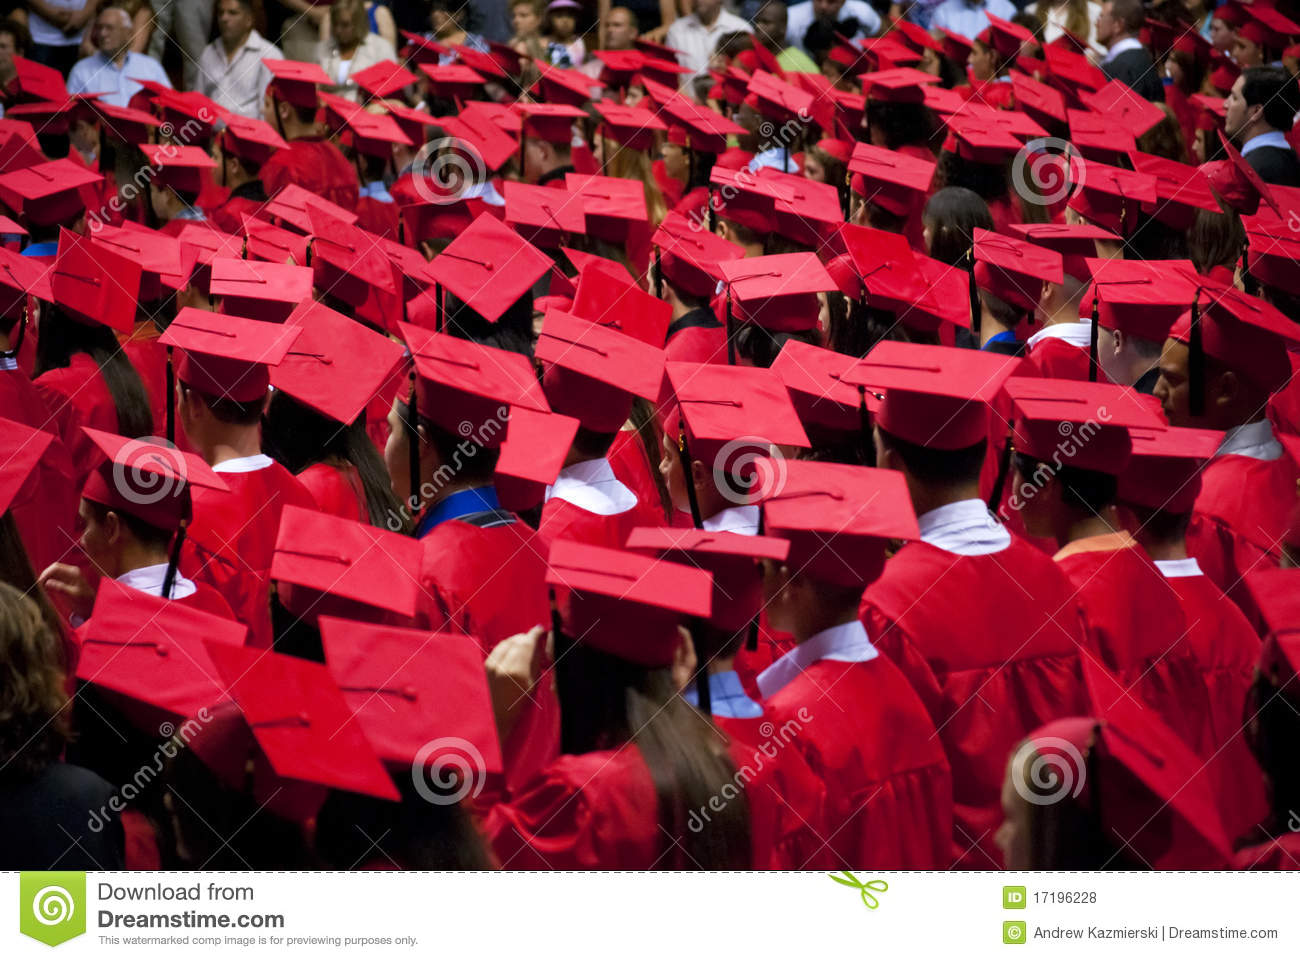 Graduates Red Cap and Gown